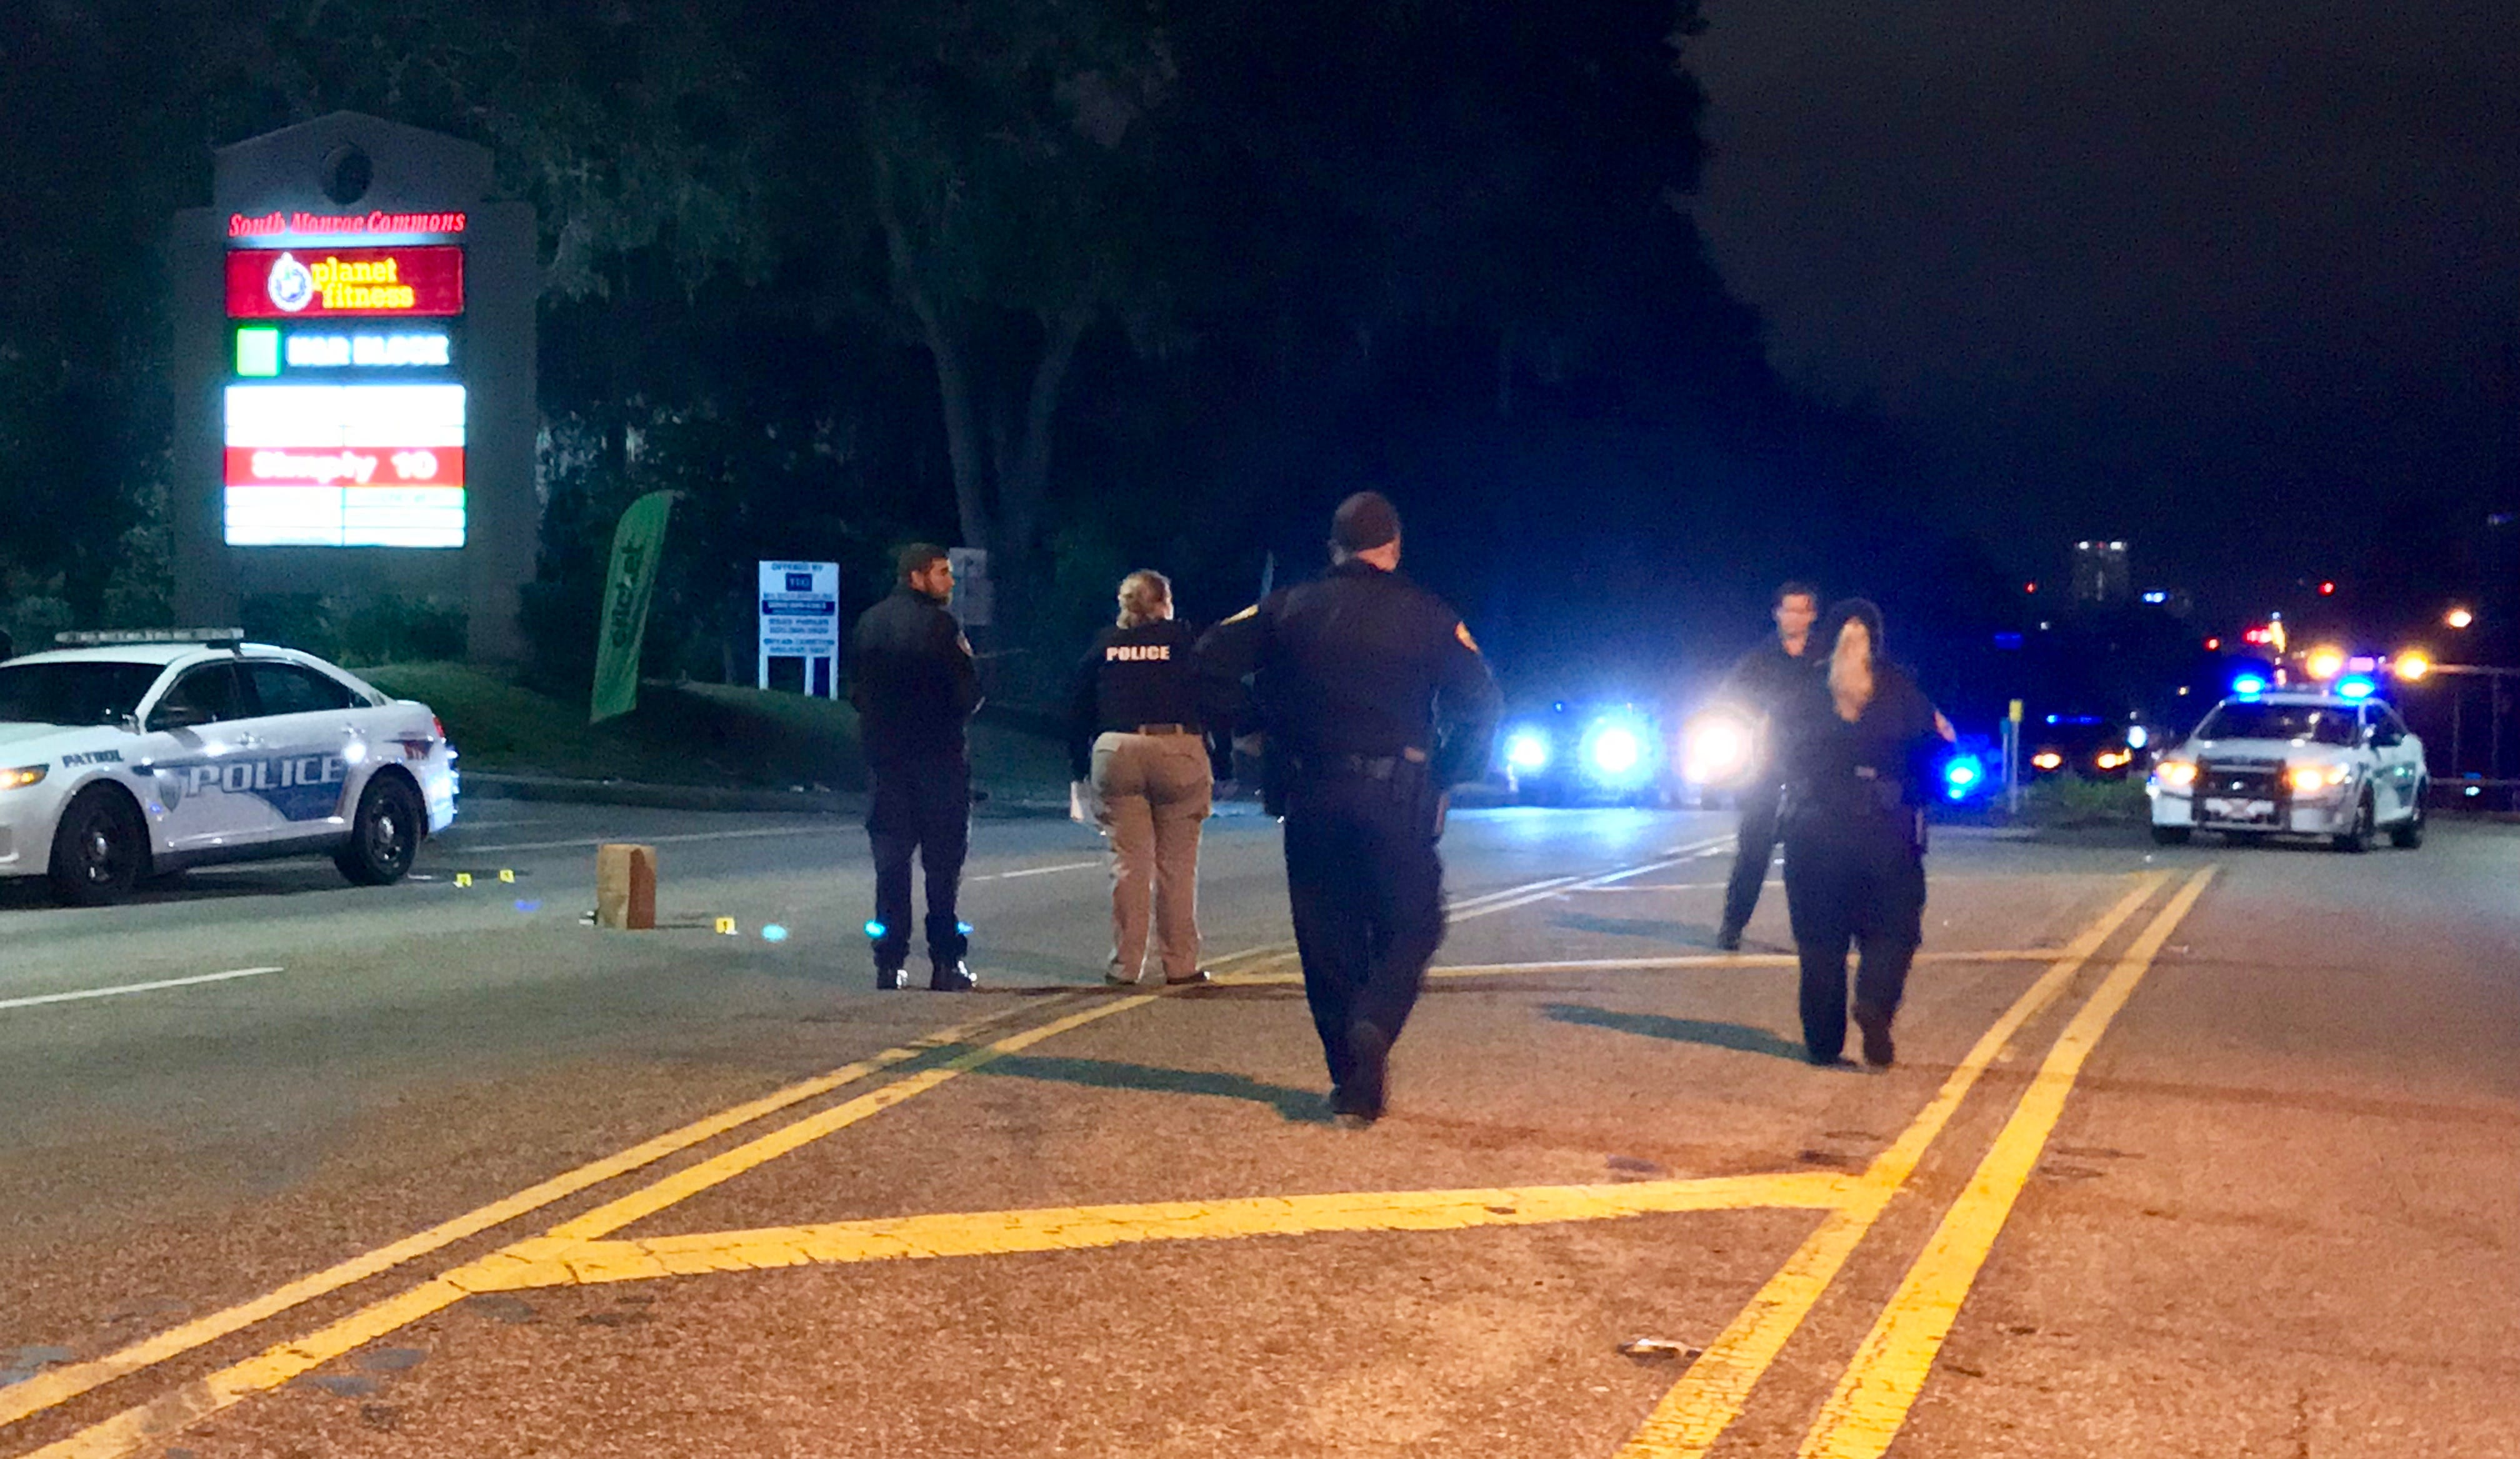 Tallahassee police respond to a shooting that injured three people early Sunday morning near a shopping center on South Monroe Street.